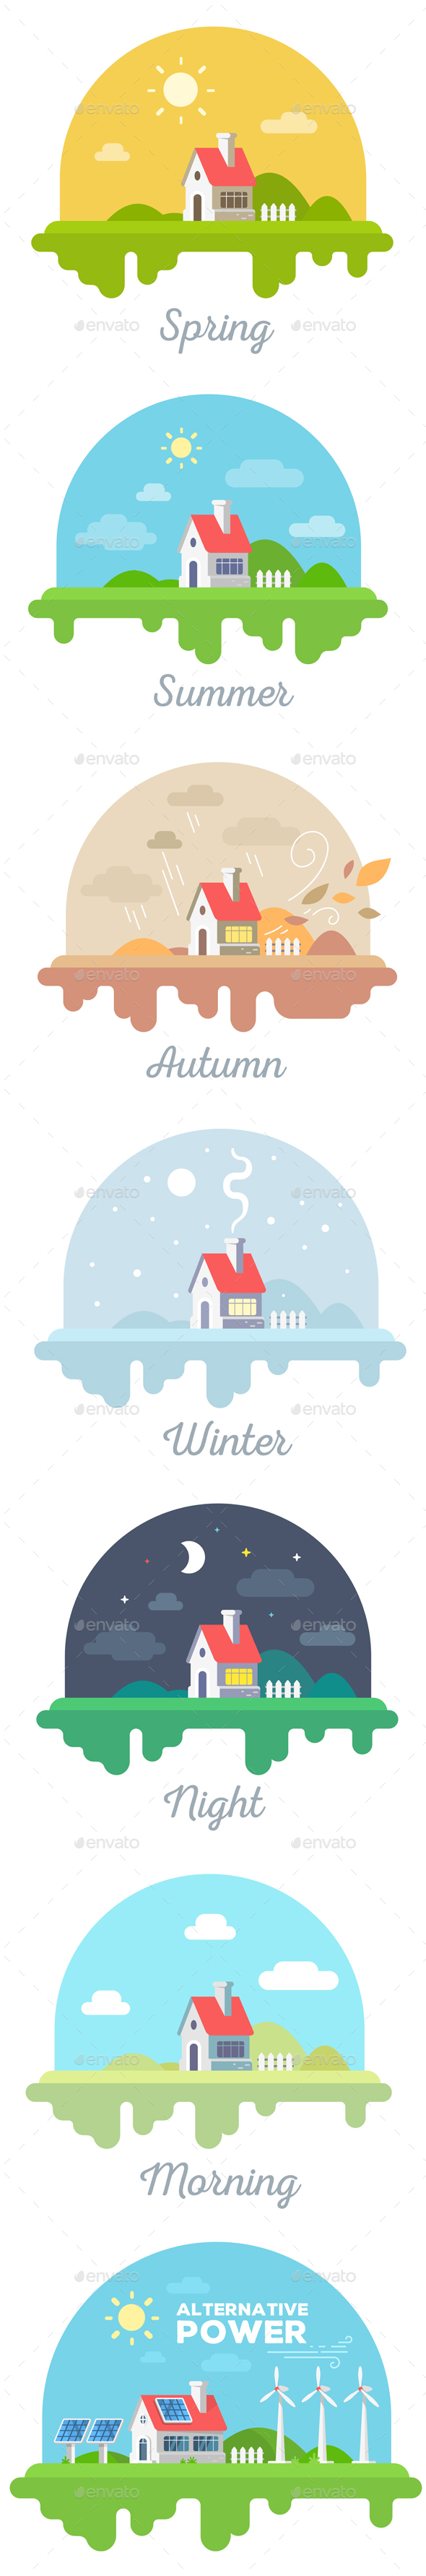 GraphicRiver All Season Rural House and Alternative Energy Sources 20423028